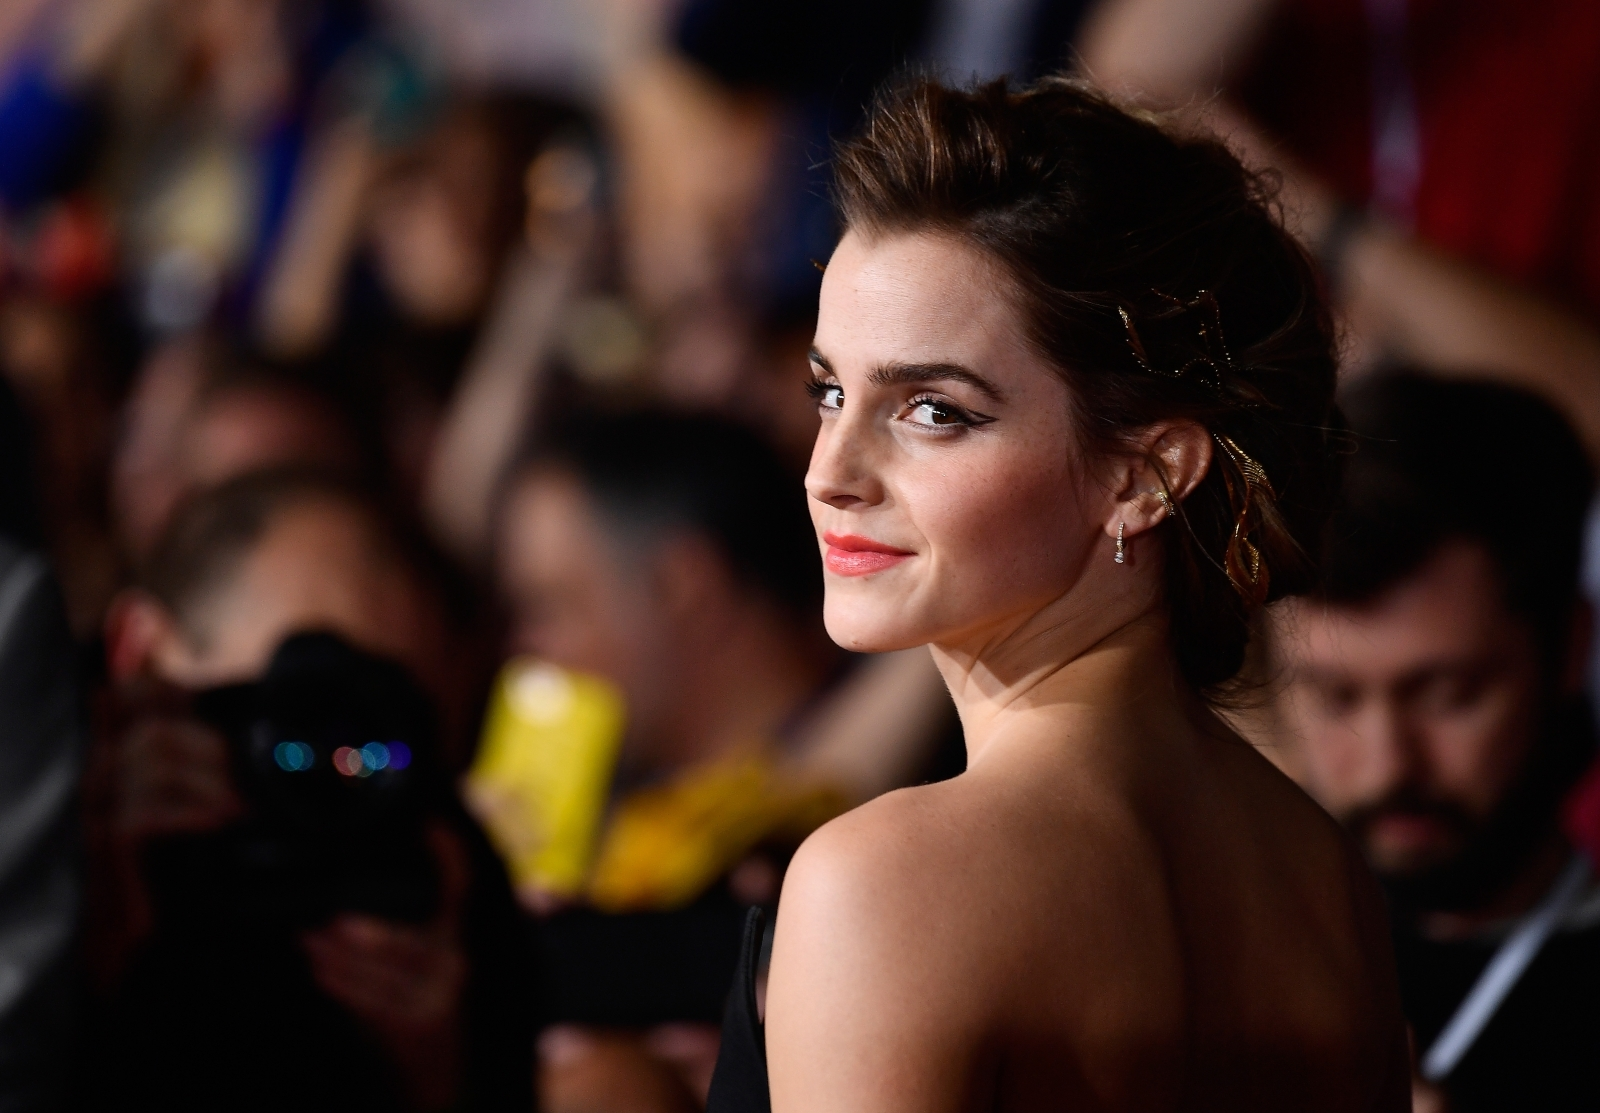 Emma Watson and more celebs' privacy threatened as Instagram hackers sell contact details on dark web